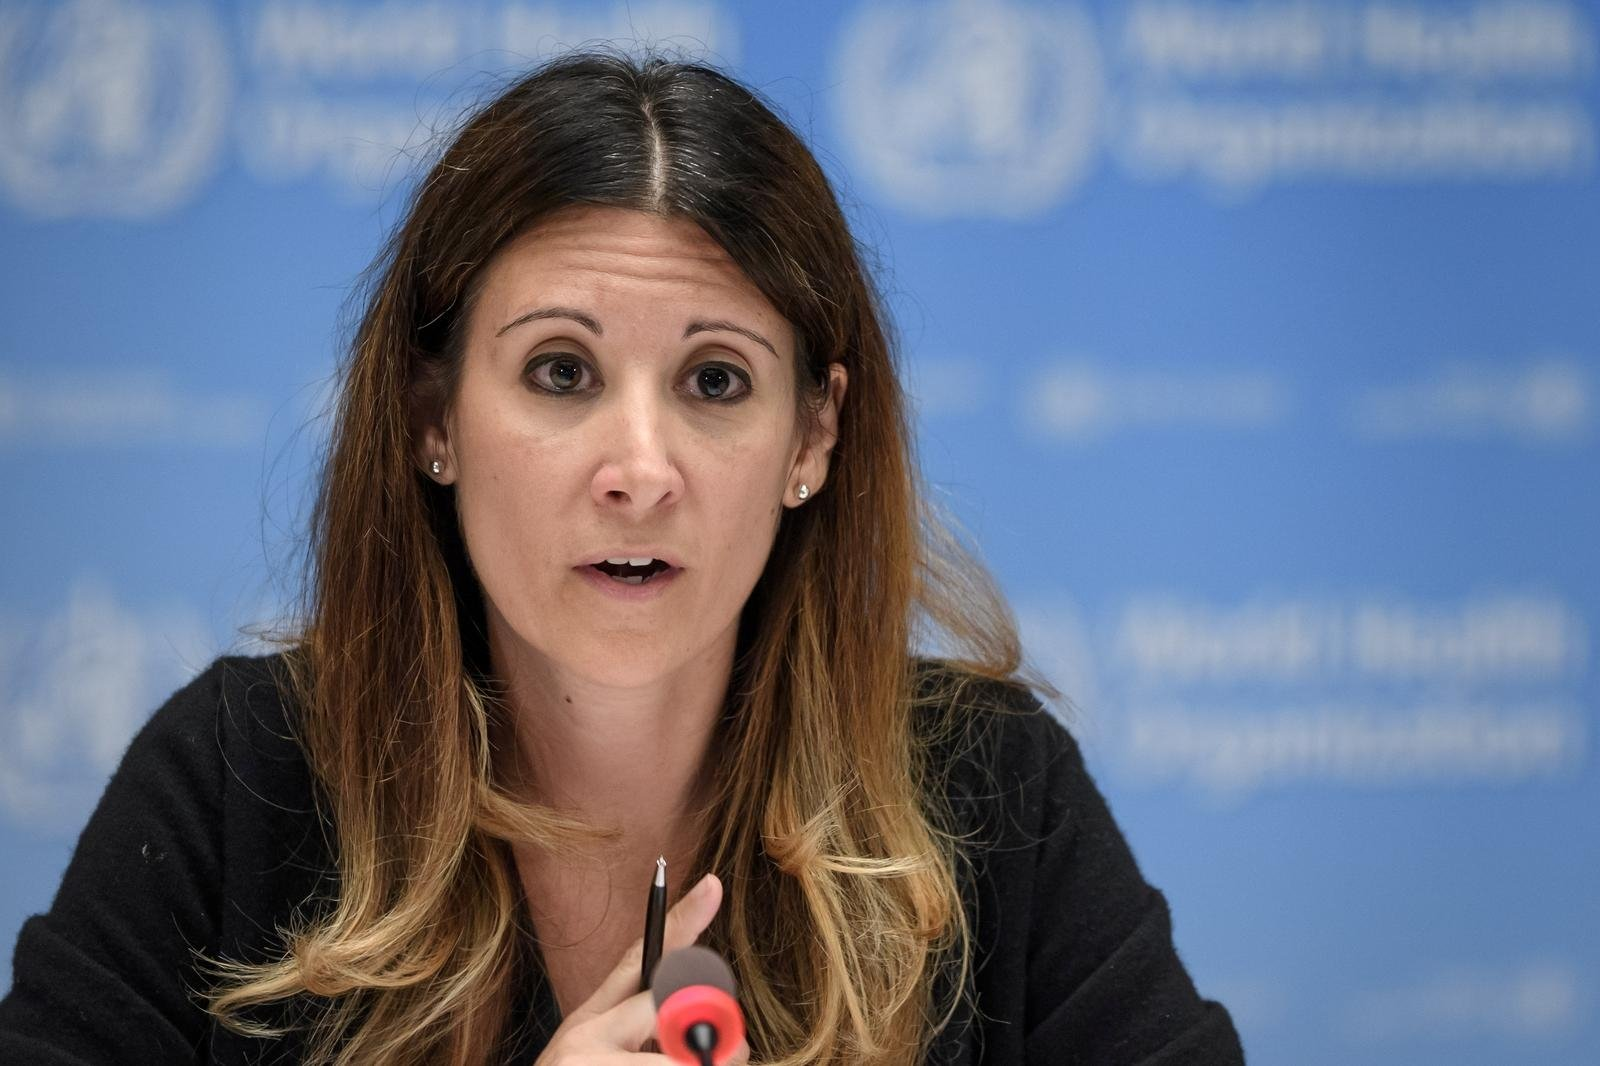 WHO technical lead for COVID-19, Maria Van Kerkhove, attends a news conference at the WHO headquarters in Geneva, Switzerland, July 3, 2020. (Reuters Photo)